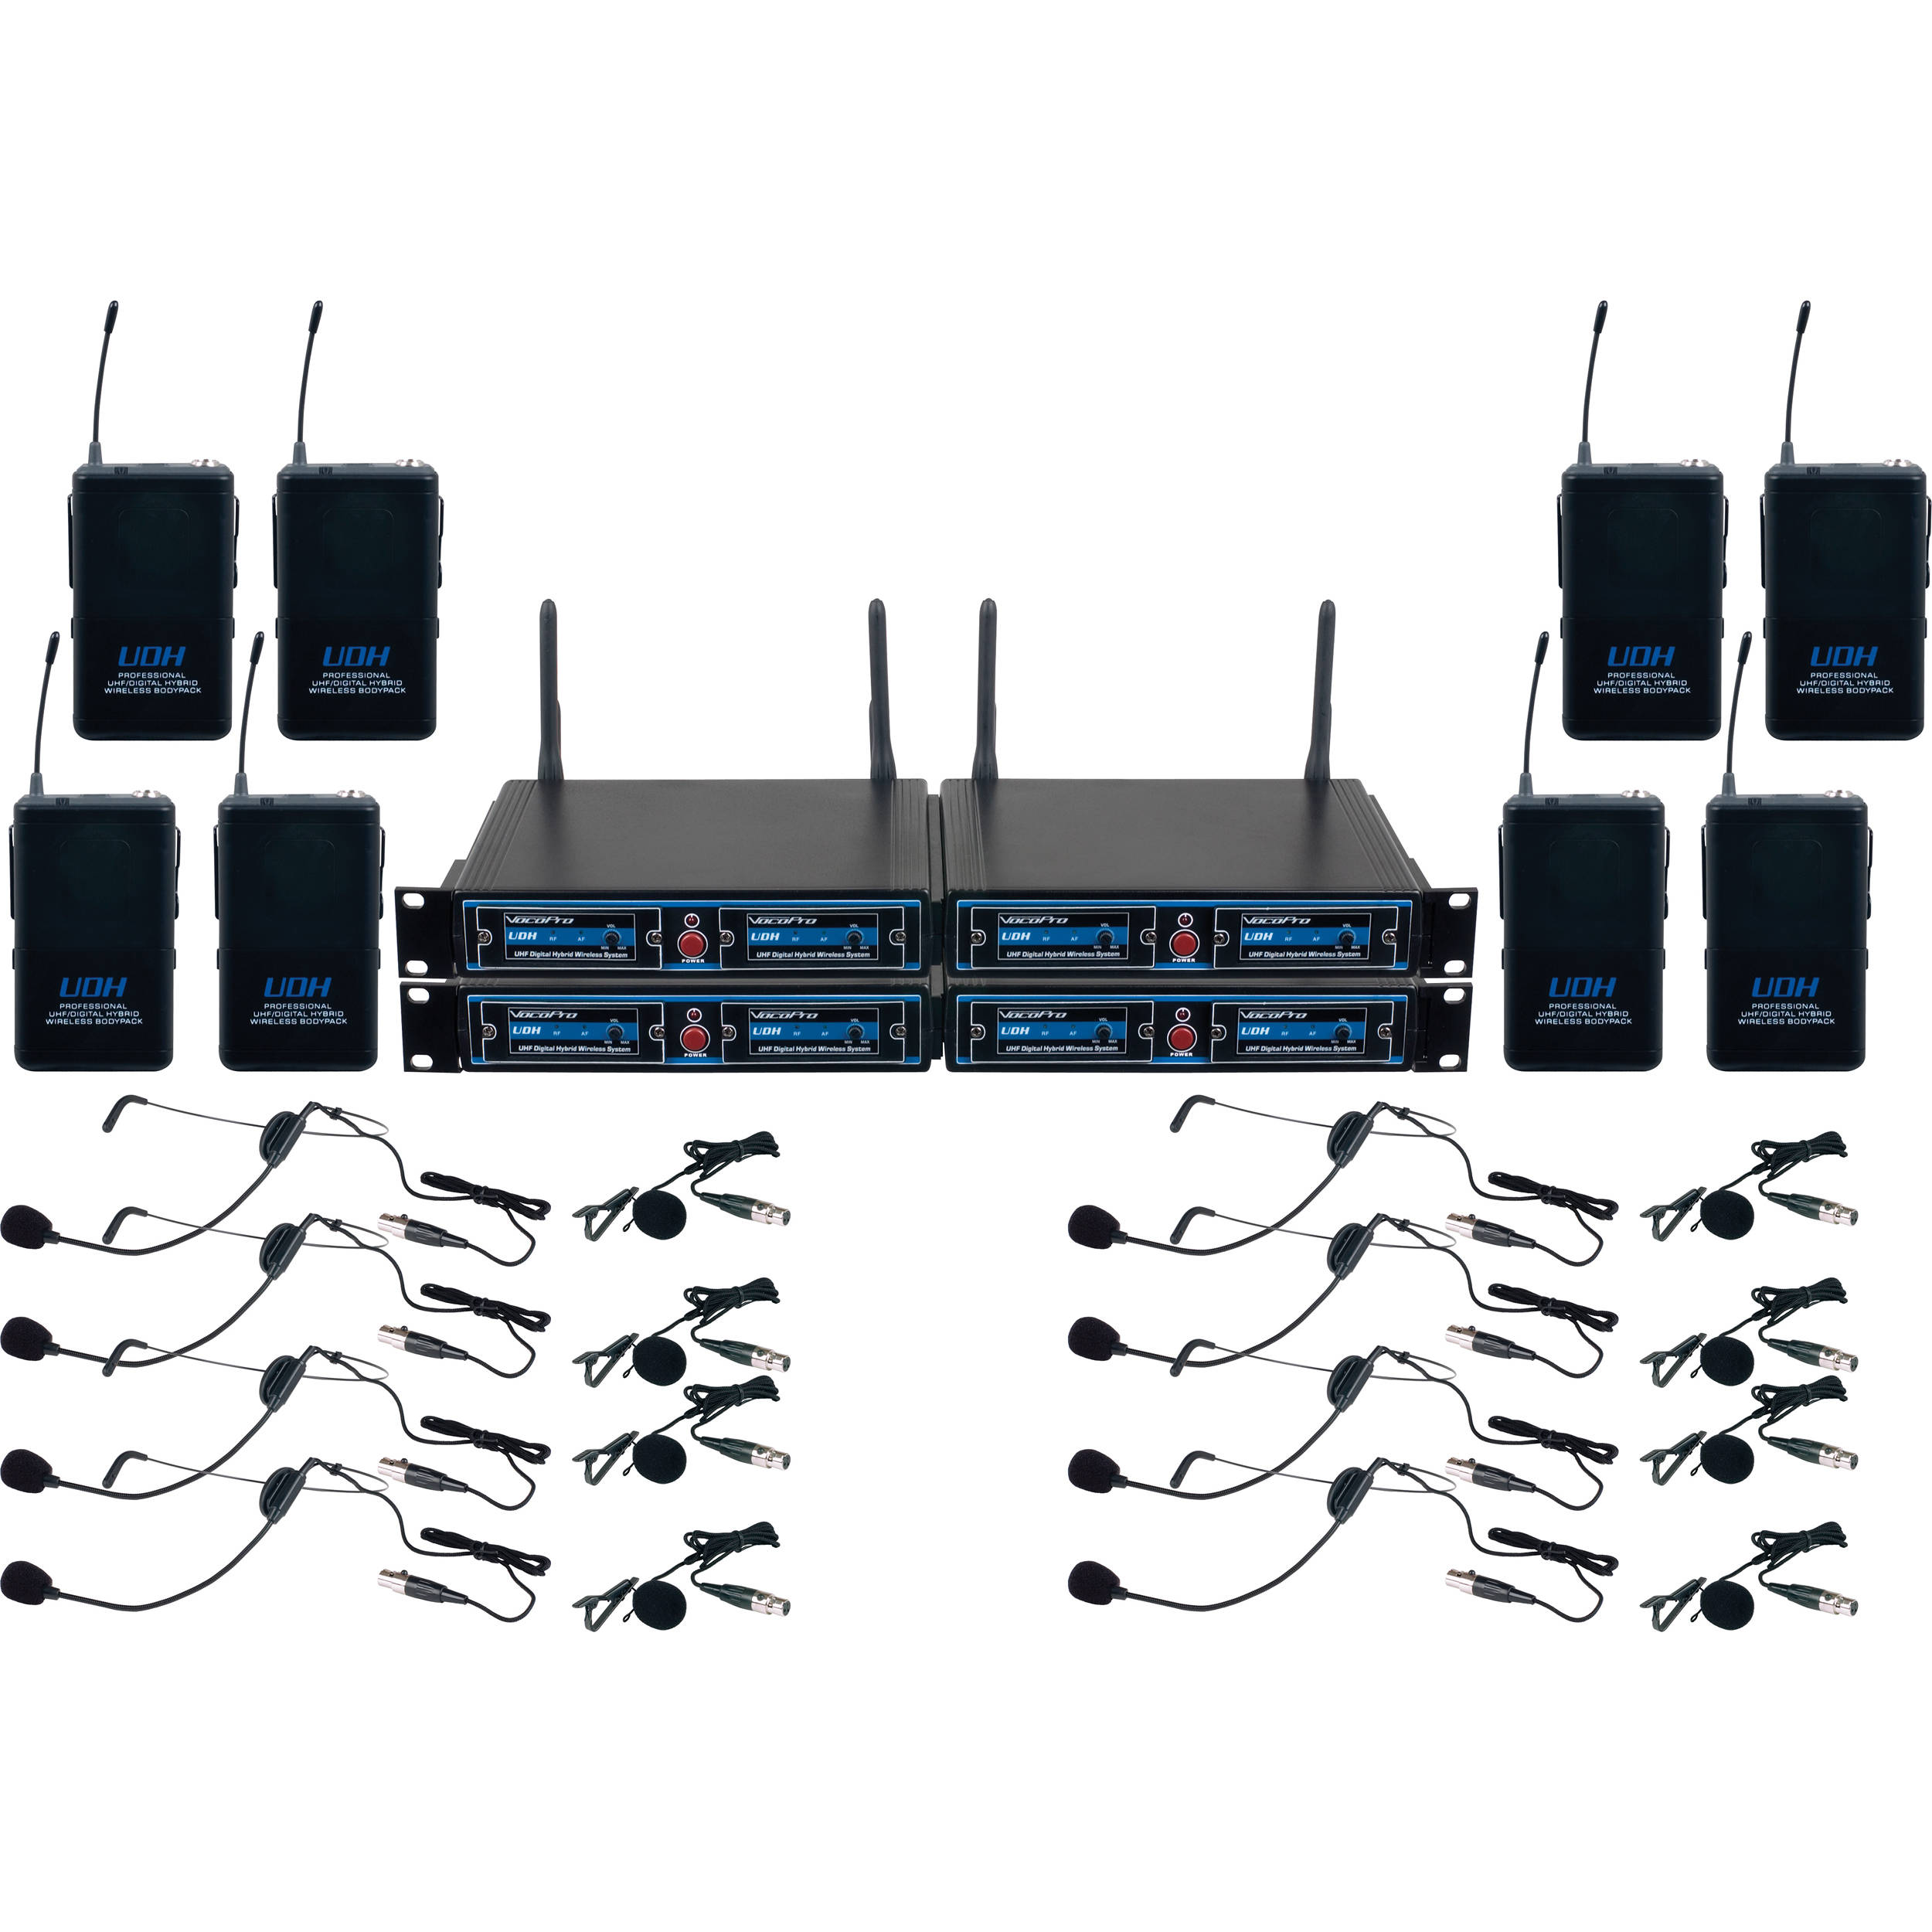 vocopro udh play 8 eight channel uhf headset and udh play 8. Black Bedroom Furniture Sets. Home Design Ideas